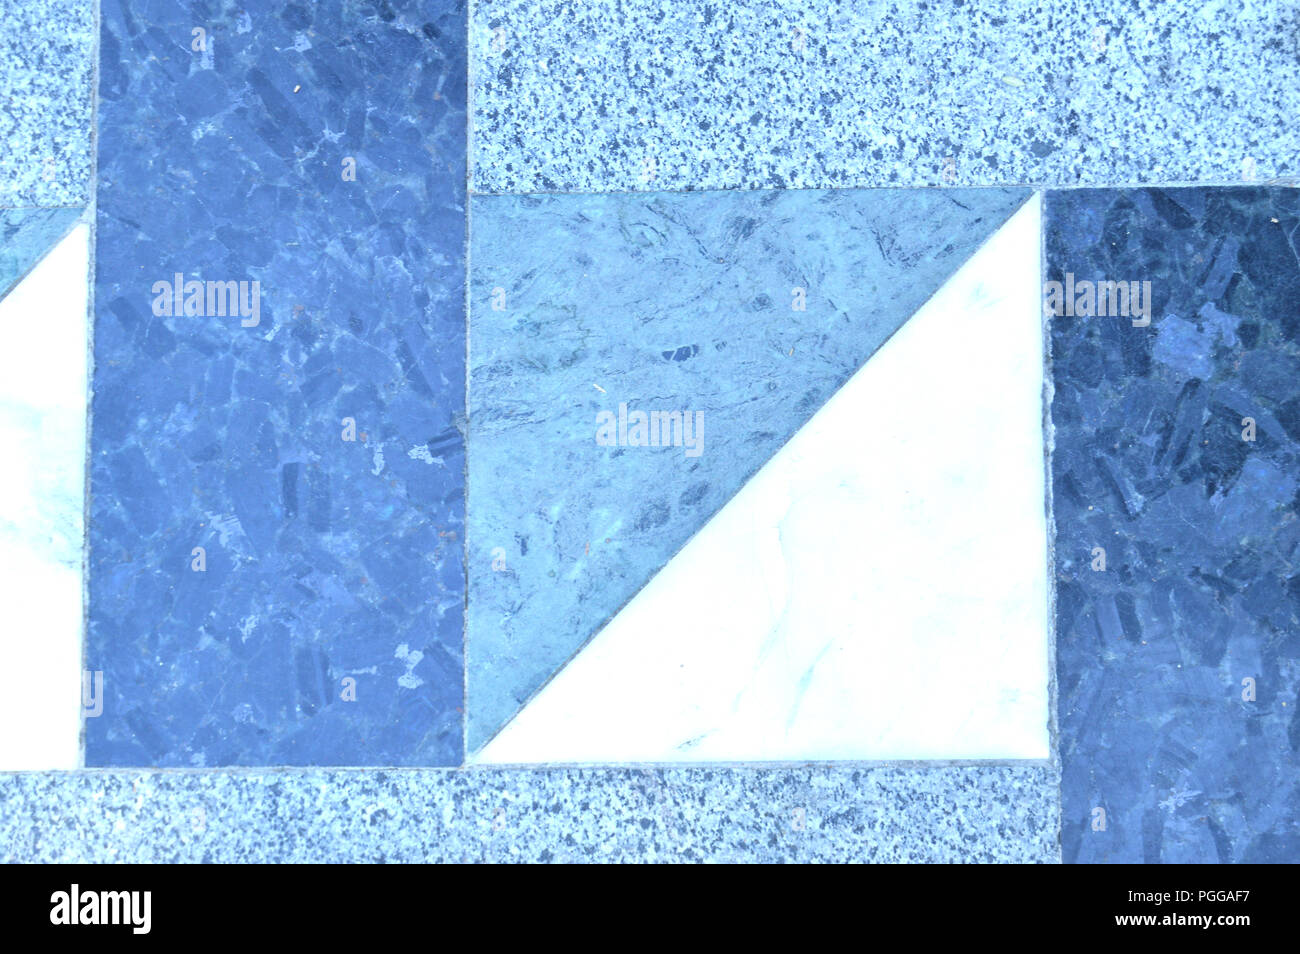 A typical mosaic on the floor of ceramic tiles, squares and diamonds in gray and blue pattern - Stock Image